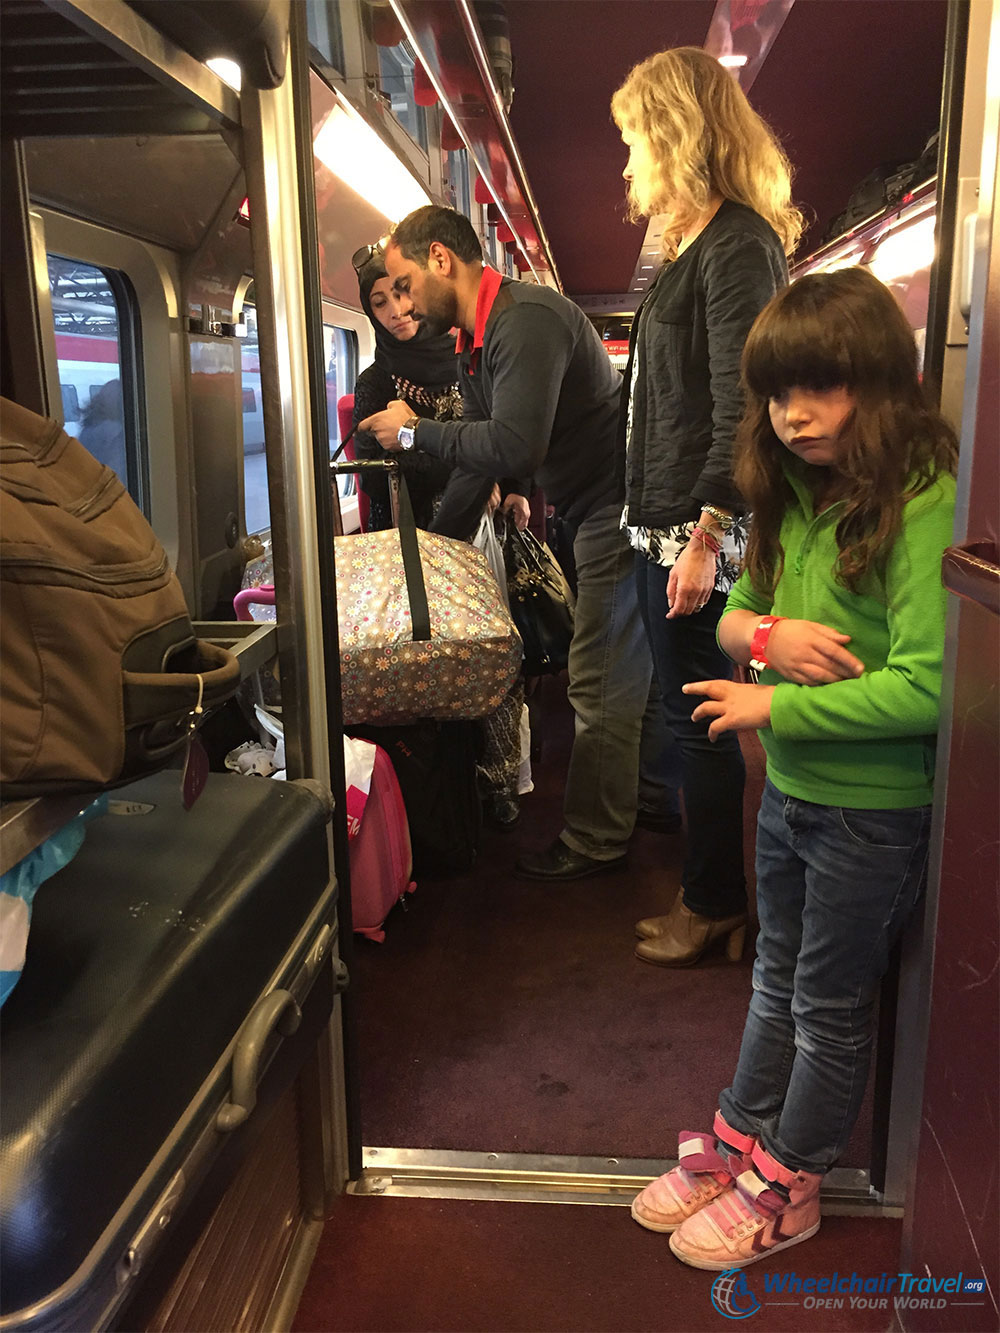 Crowded Thalys Train Wheelchair Access Difficult